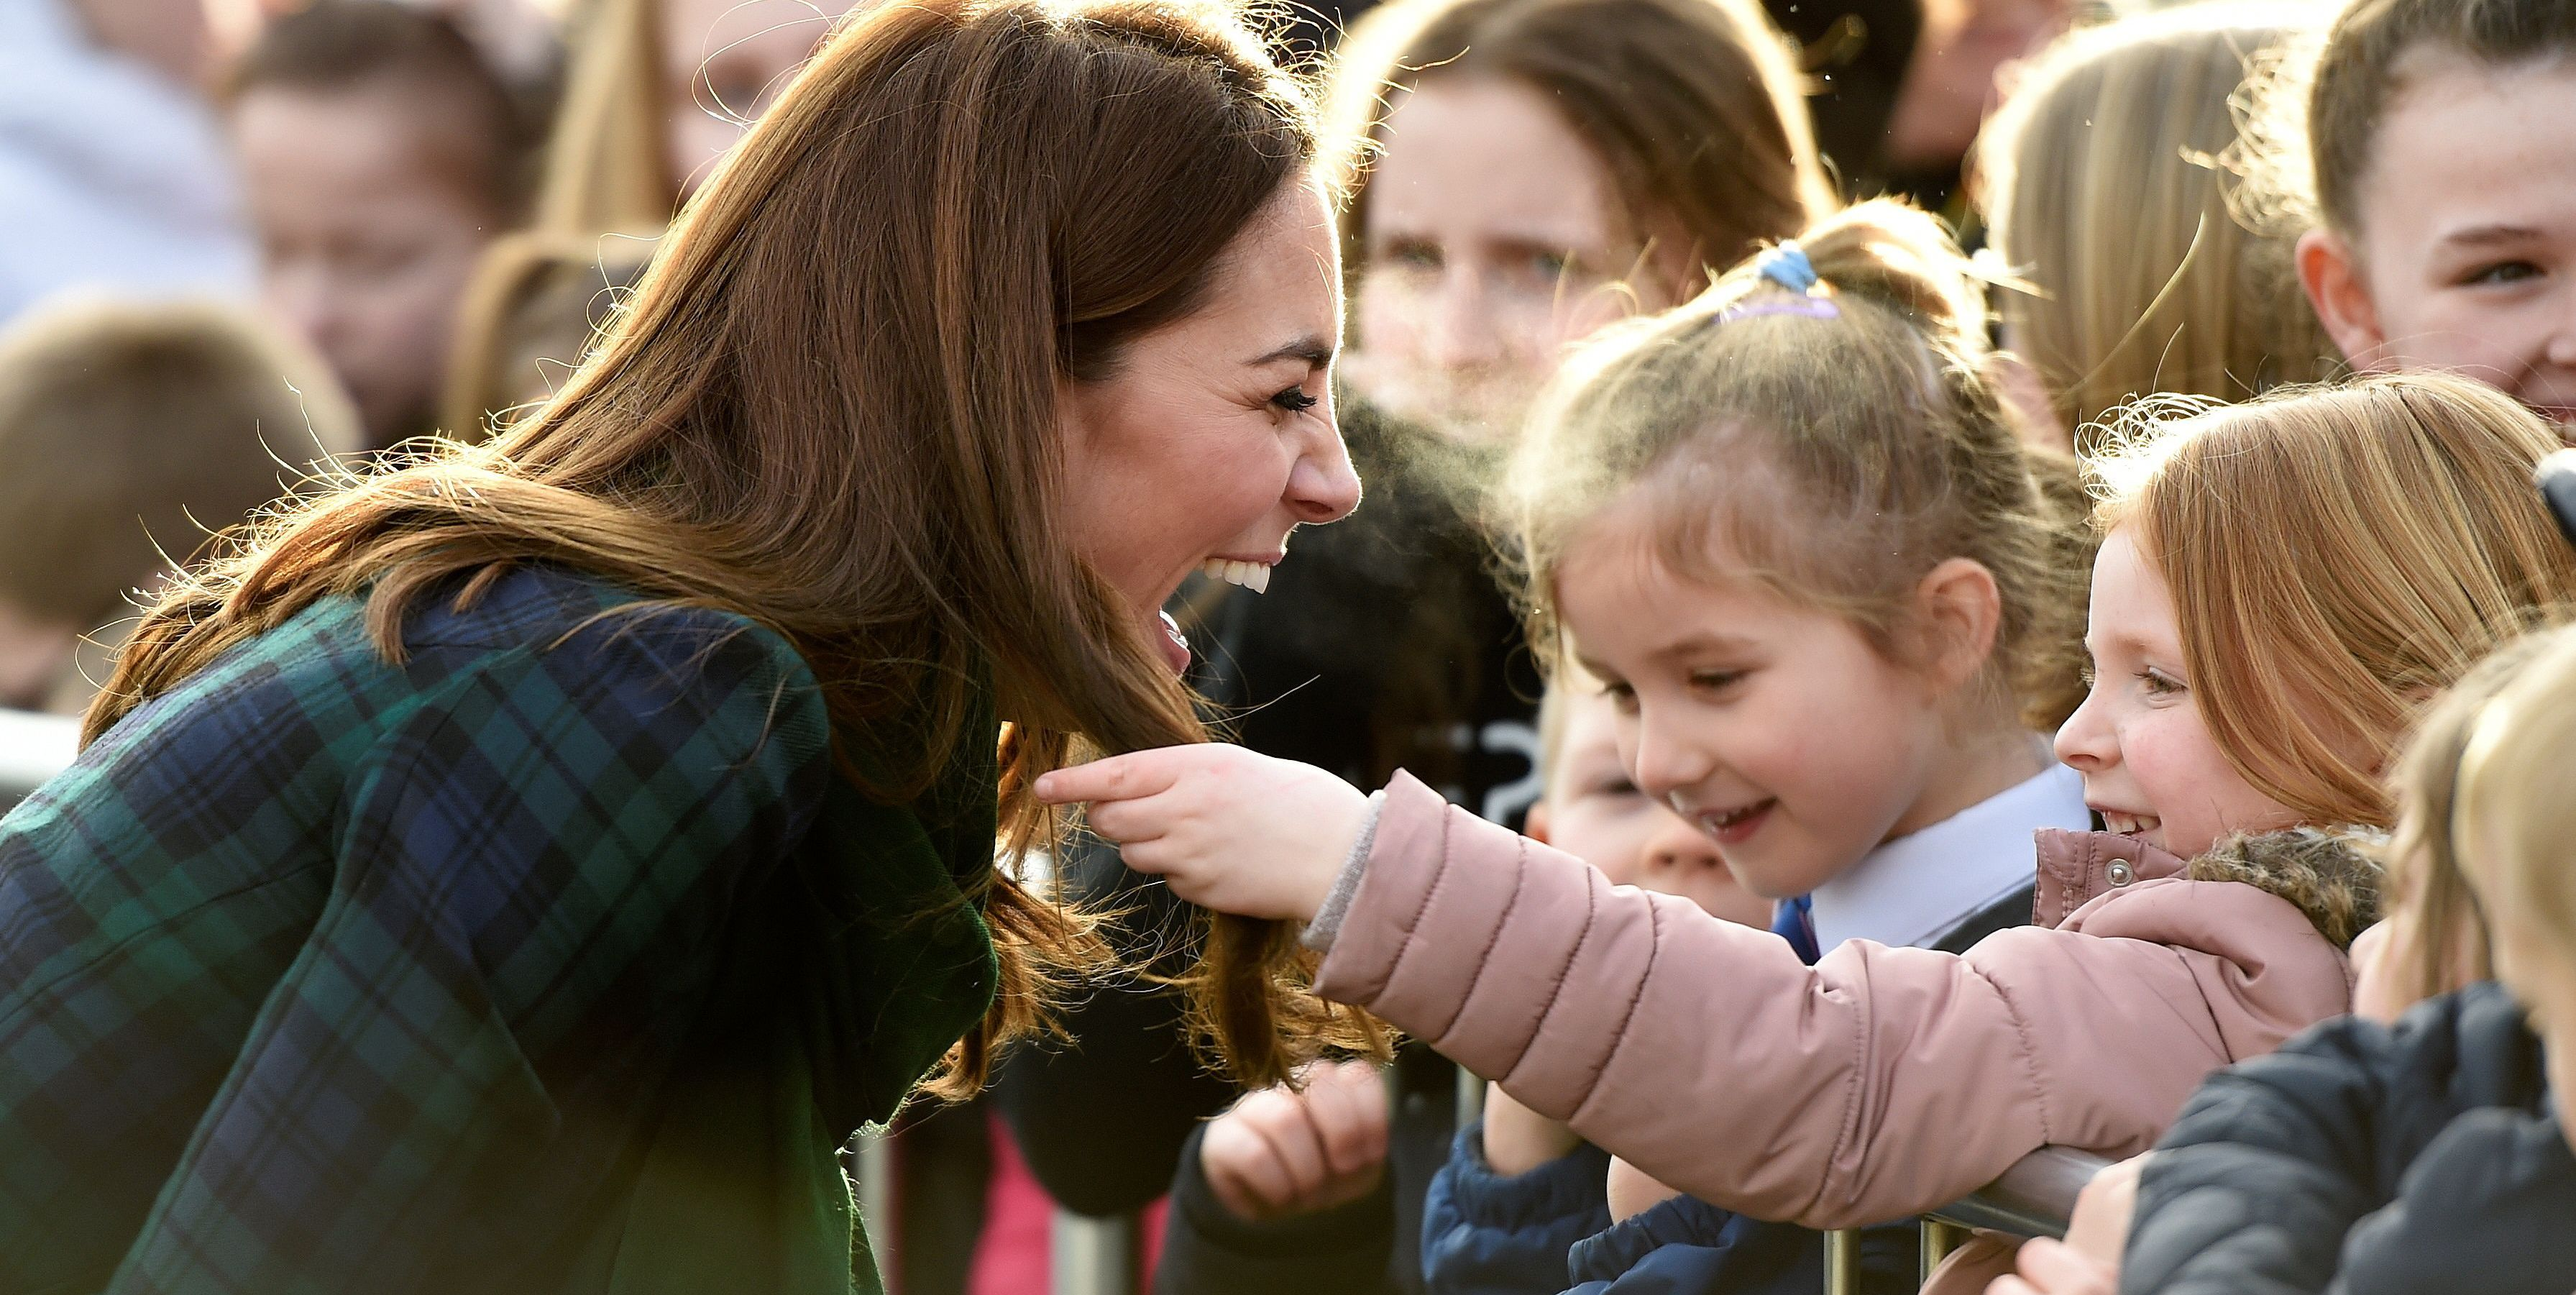 Kate Had the Most Precious Reaction When a Girl Touched Her Hair